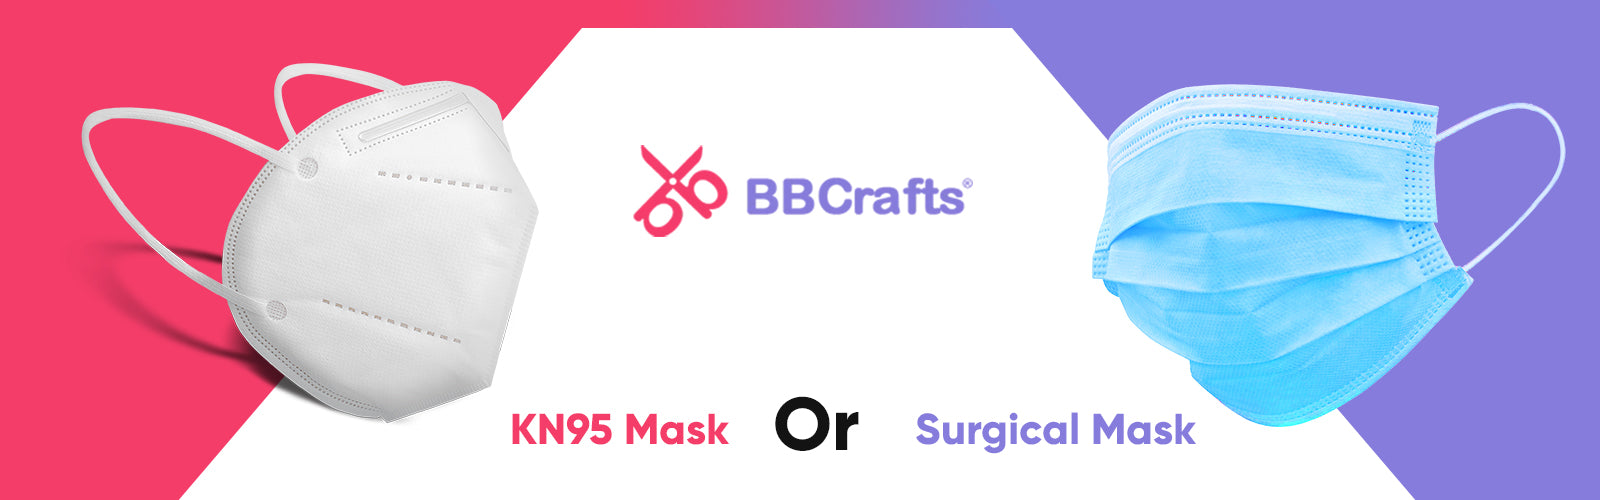 What is the difference between n95 and surgical mask?